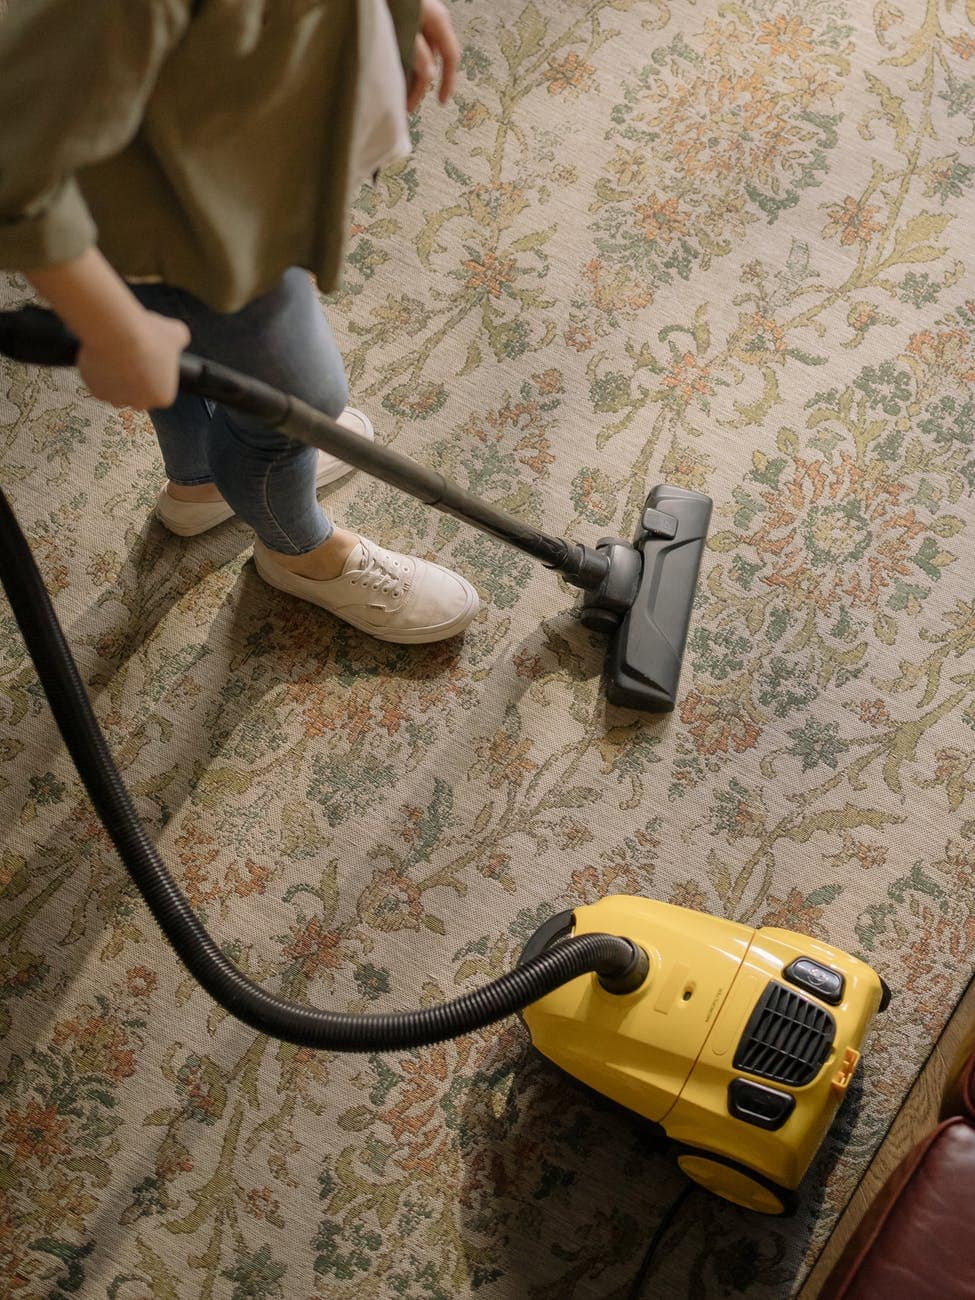 Carpet Care: How to Effectively Clean and Remove Carpet Stains in Your Carpet